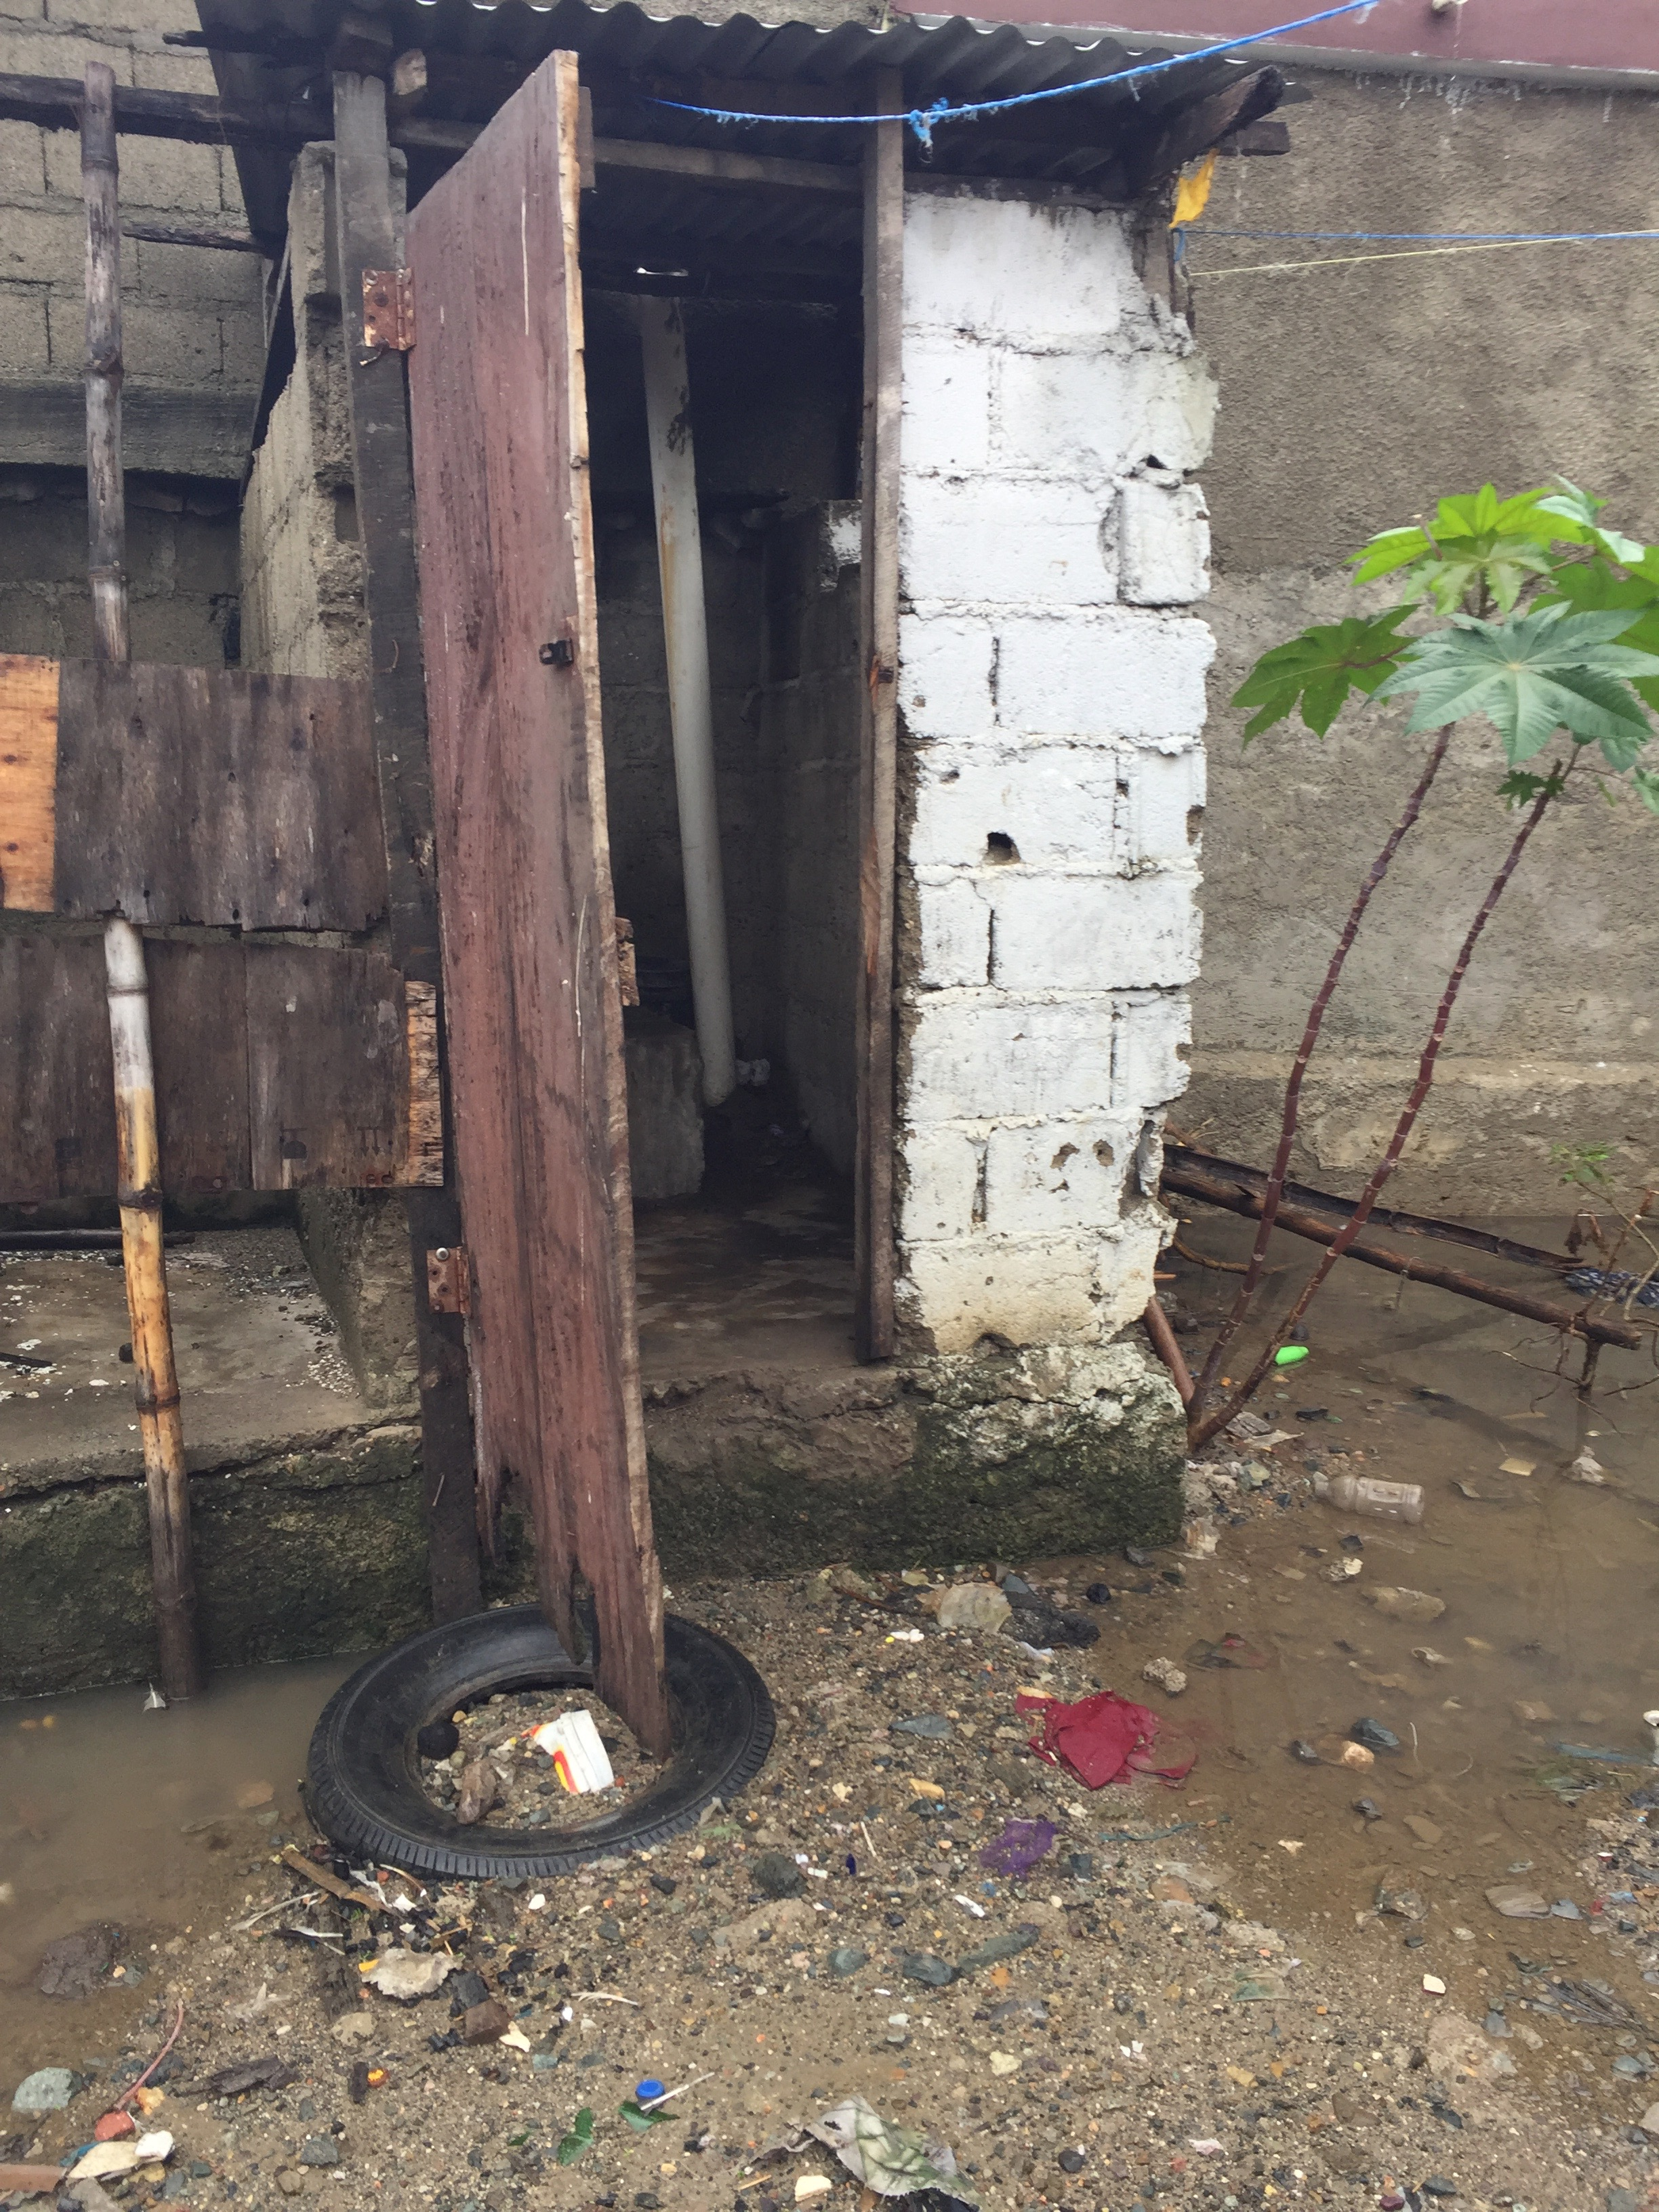 A pit latrine in regular use in Cap-Haitien by Chelsea Wald (Creative Commons)